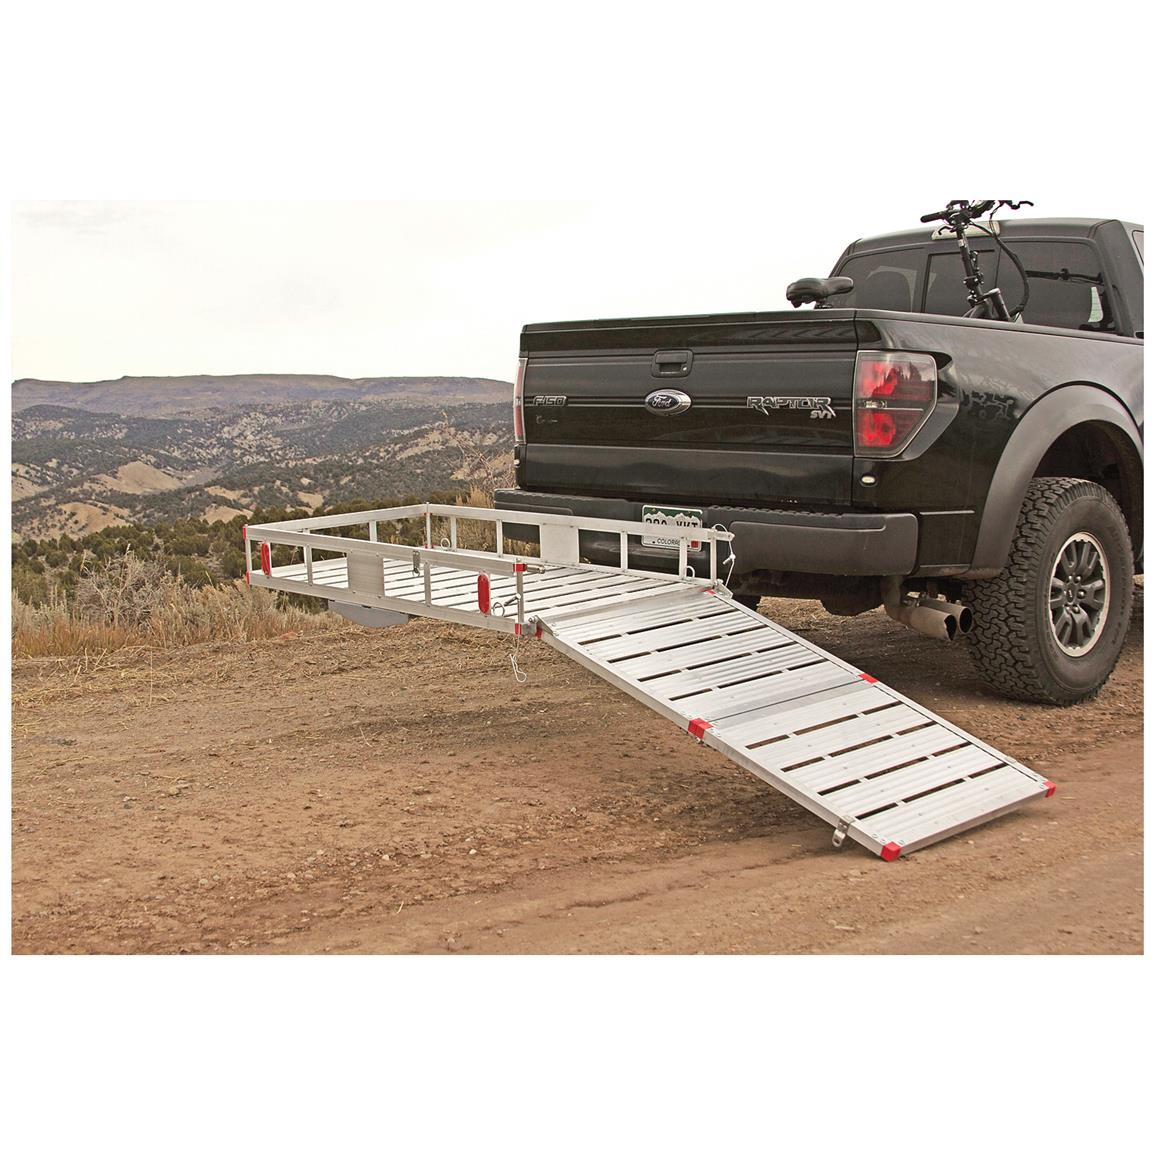 Simply lower the ramp, drive / push / pull your items onto the bed, and lock the ramp back in place. It's as easy as that.